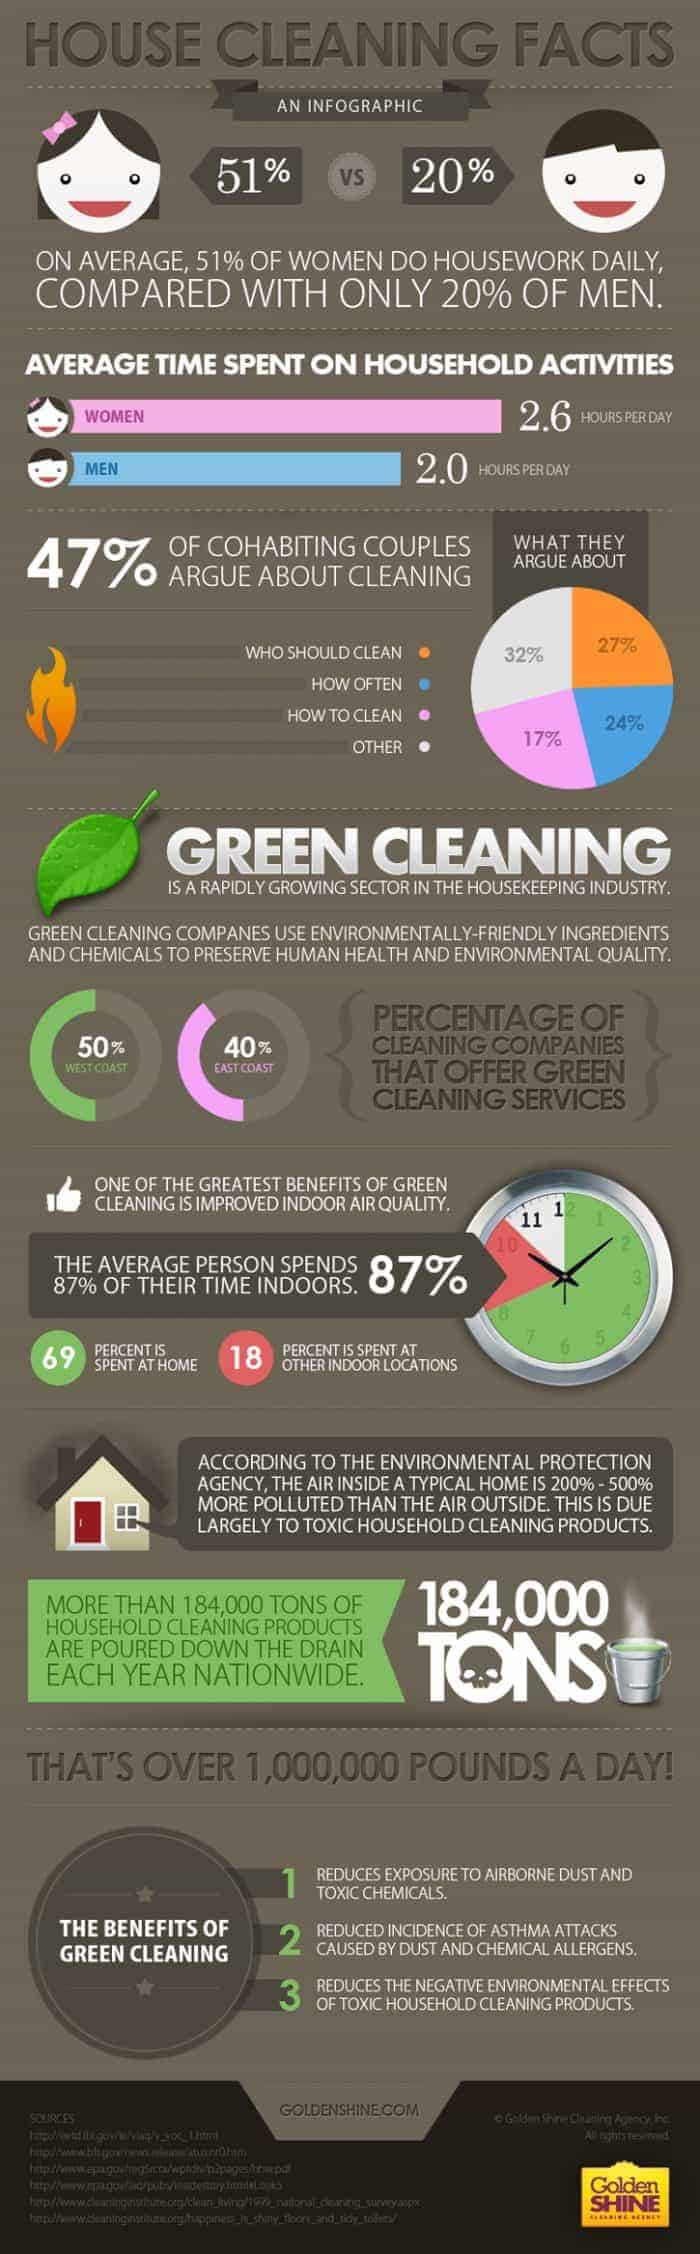 House Cleaning Facts